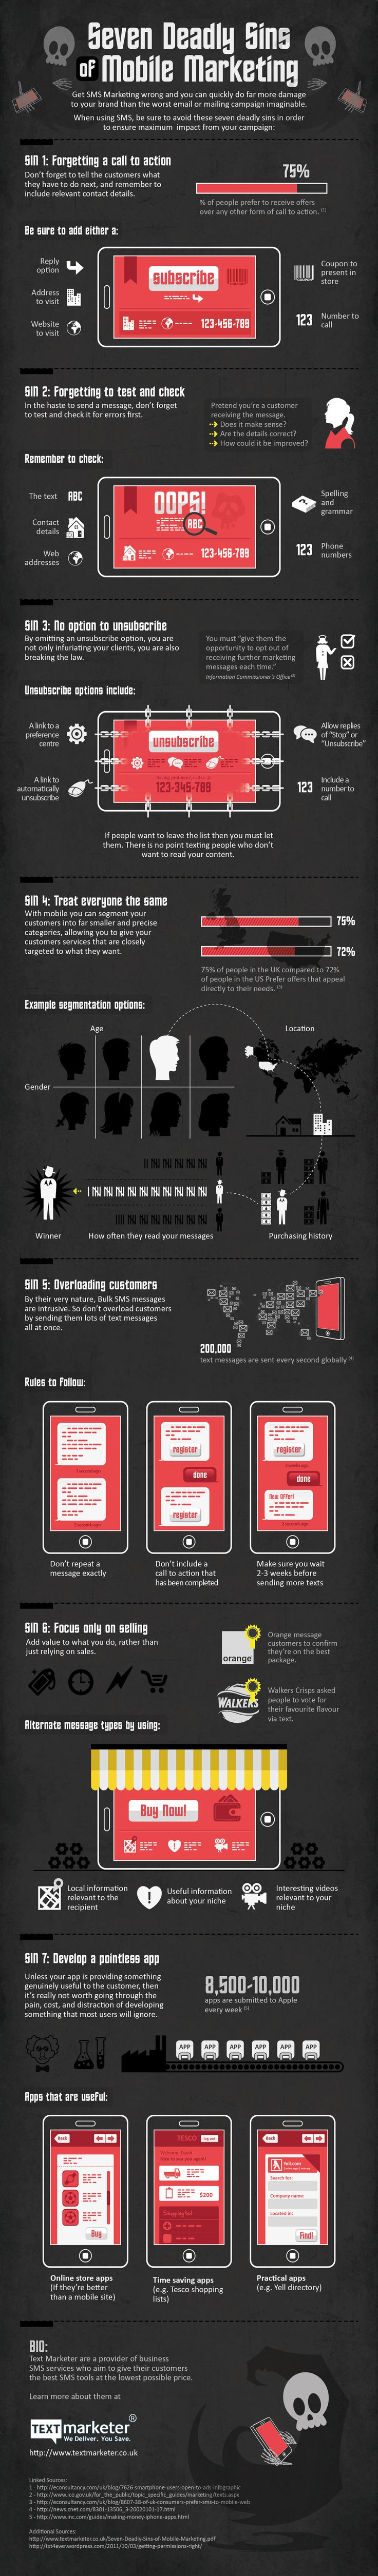 7 Deadly Sins Of Mobile Marketing 530308206f807050058347bb1d2e6917